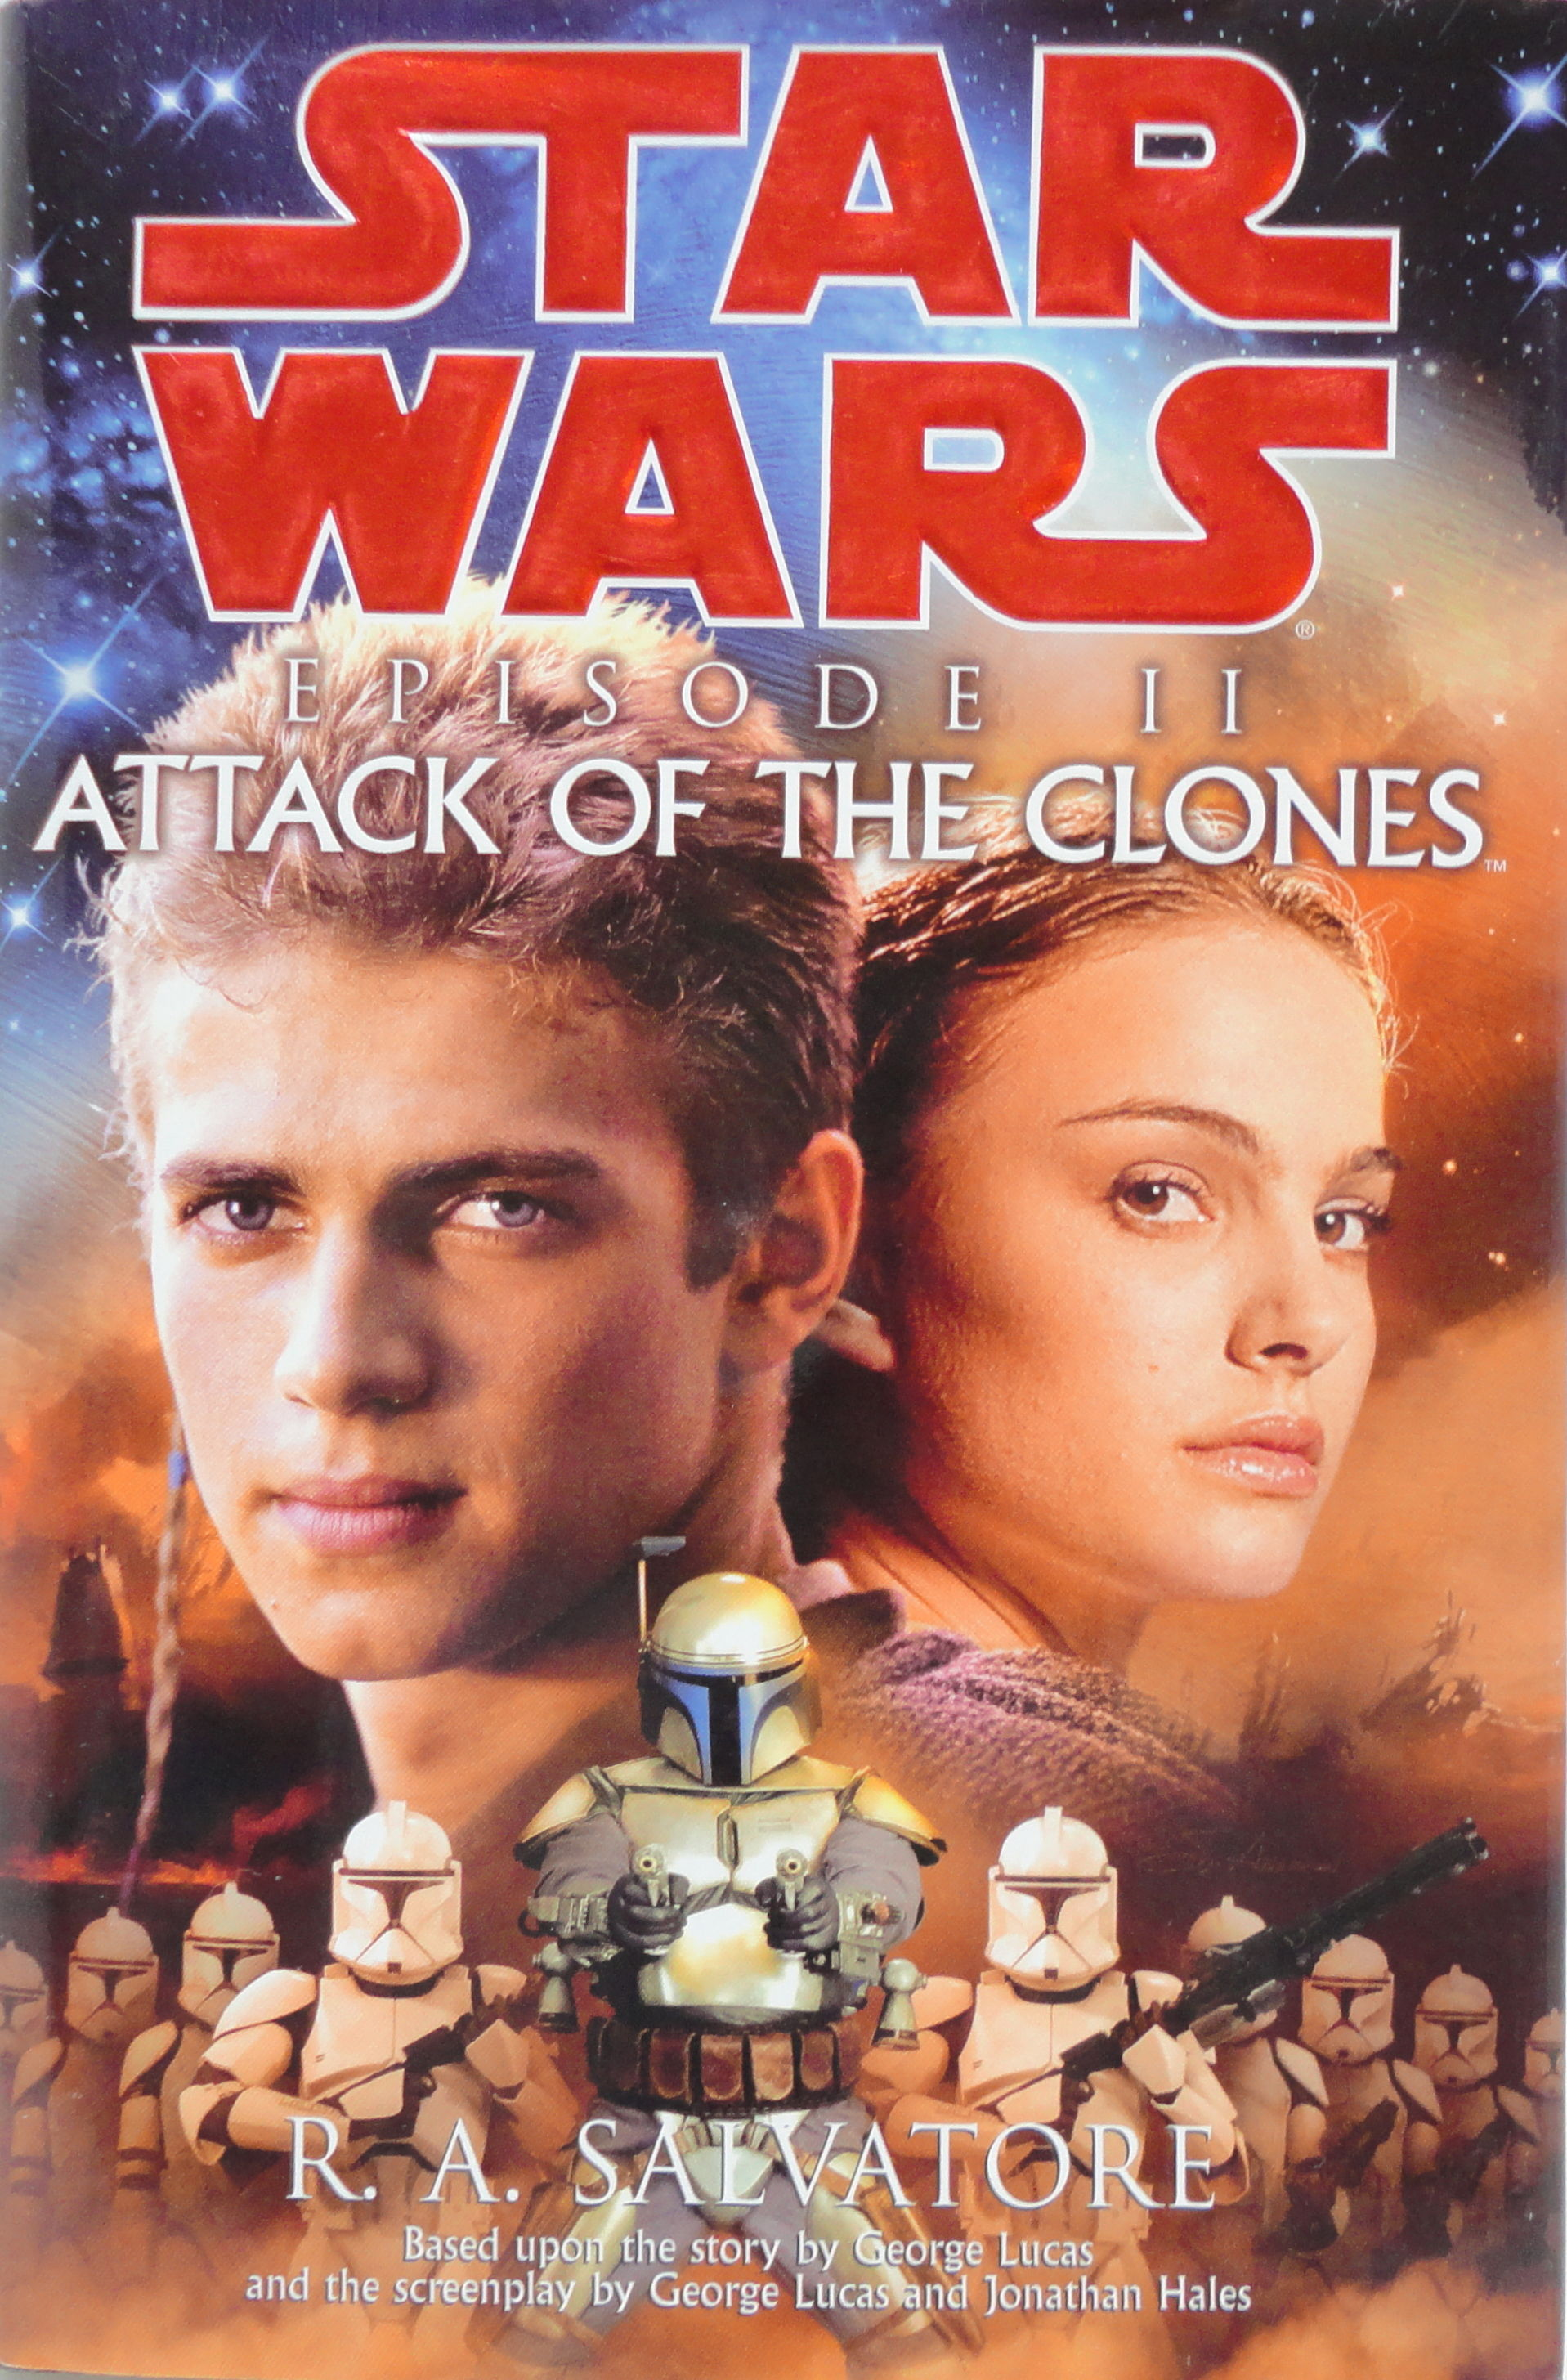 Star Wars Episode II: Attack of the Clones (Novel)